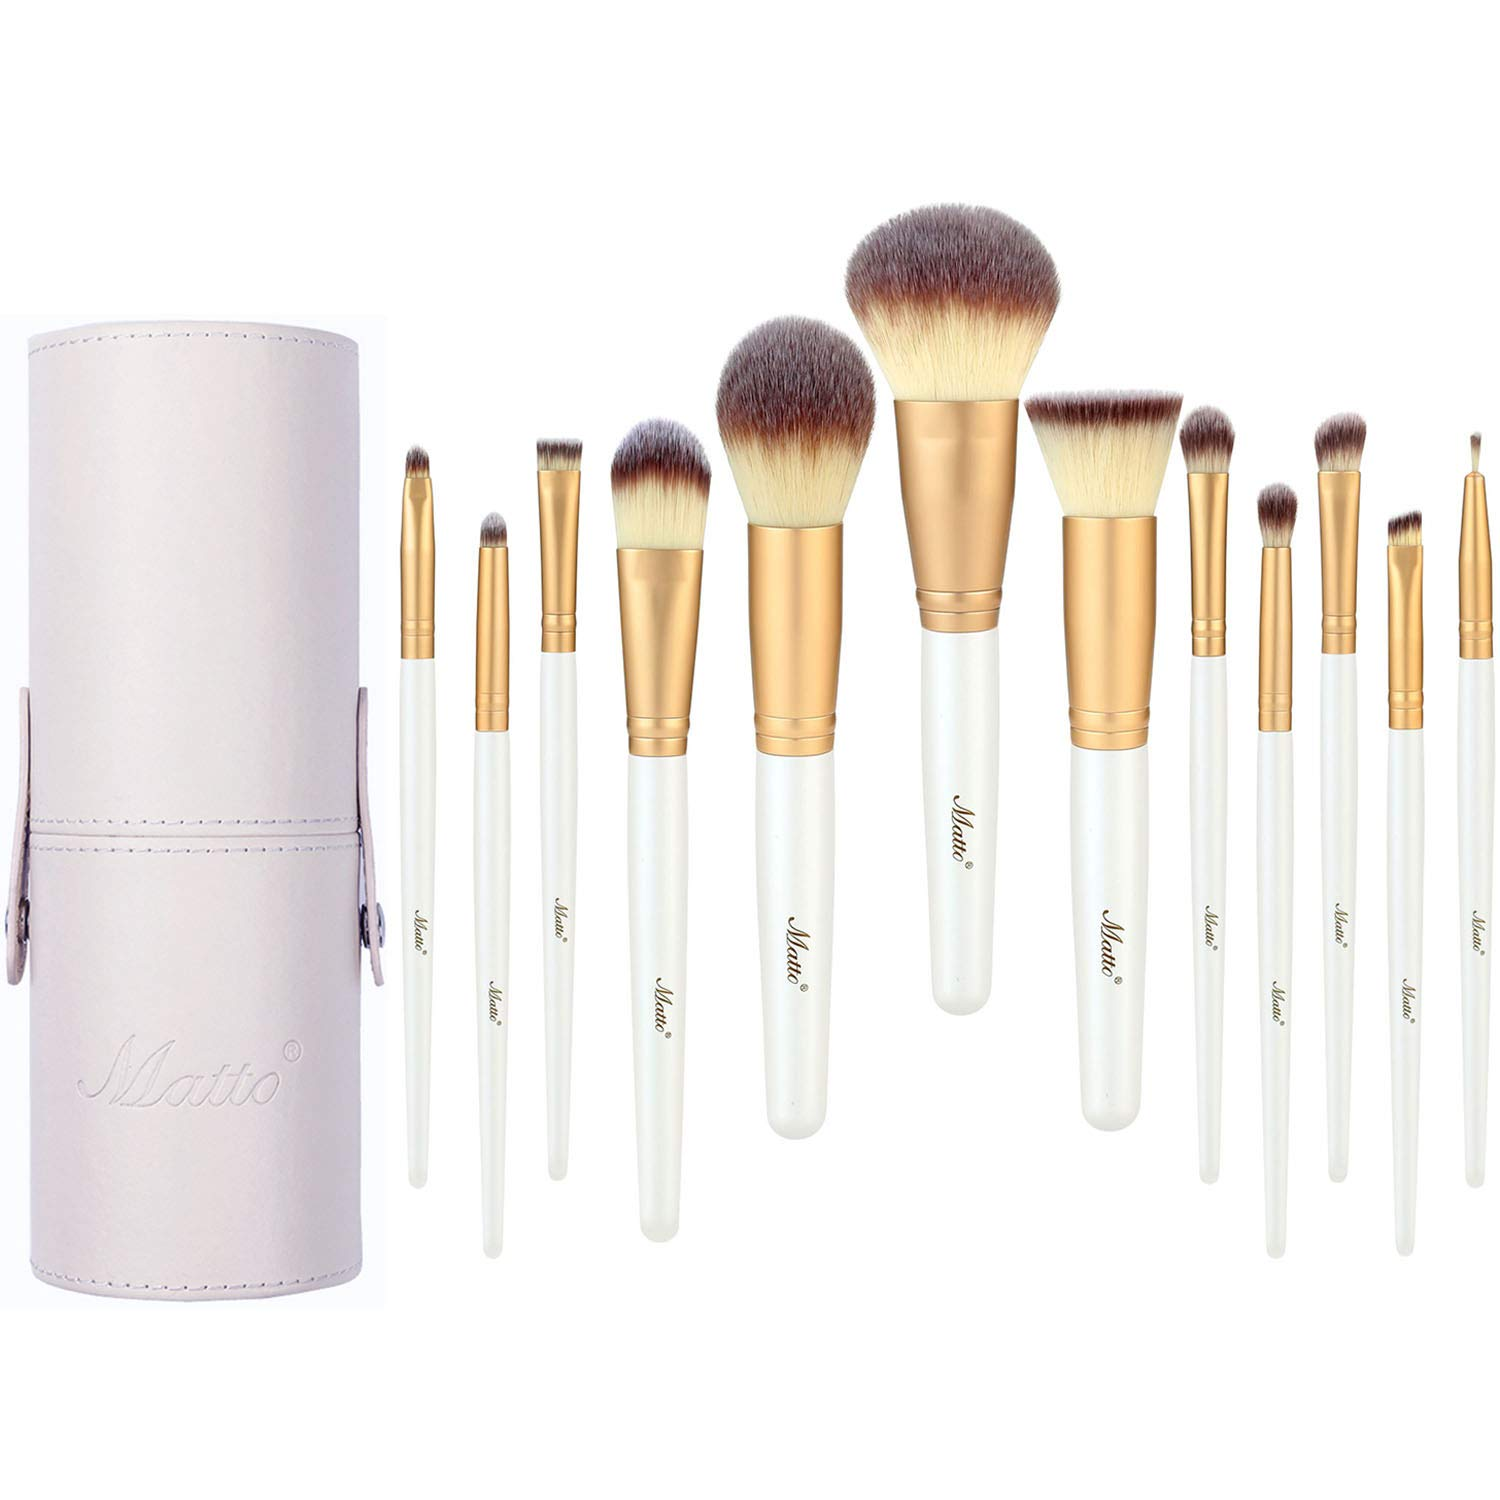 Matto Makeup Brushes 12 Piece Makeup Brush Set with Holder for Eye Face Make Up Brushes